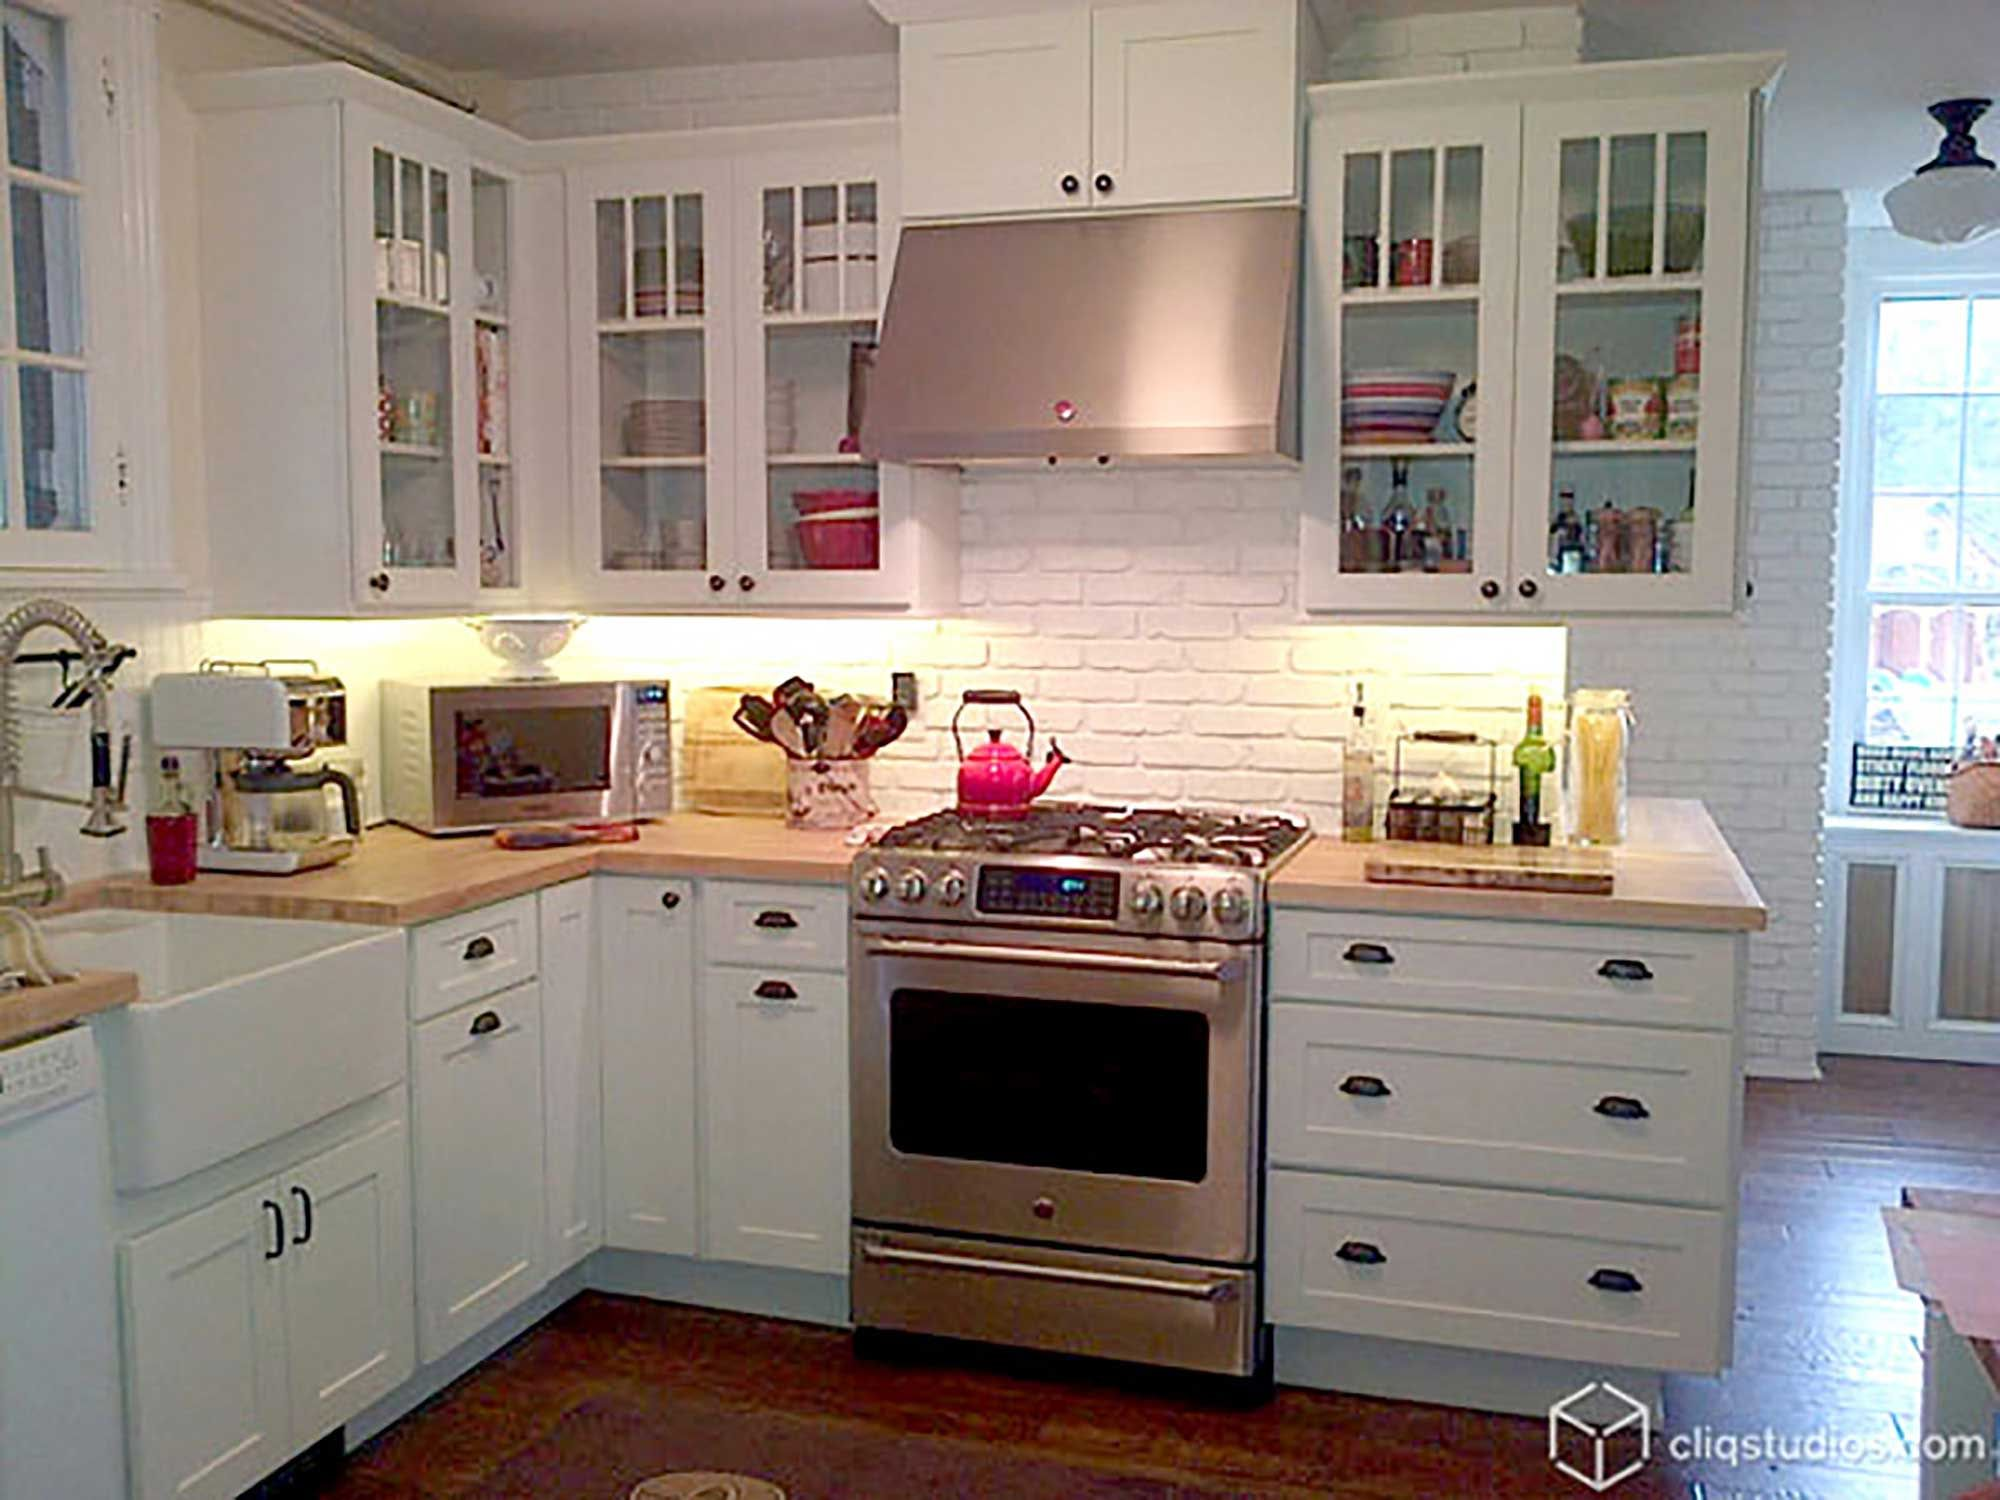 Menards Kitchen Cabinets Menards Home Improvement Topic Klearvue Cabinetry Kitchen Cabi Farm Kitchen Design Kitchen Cabinet Design White Kitchen Design